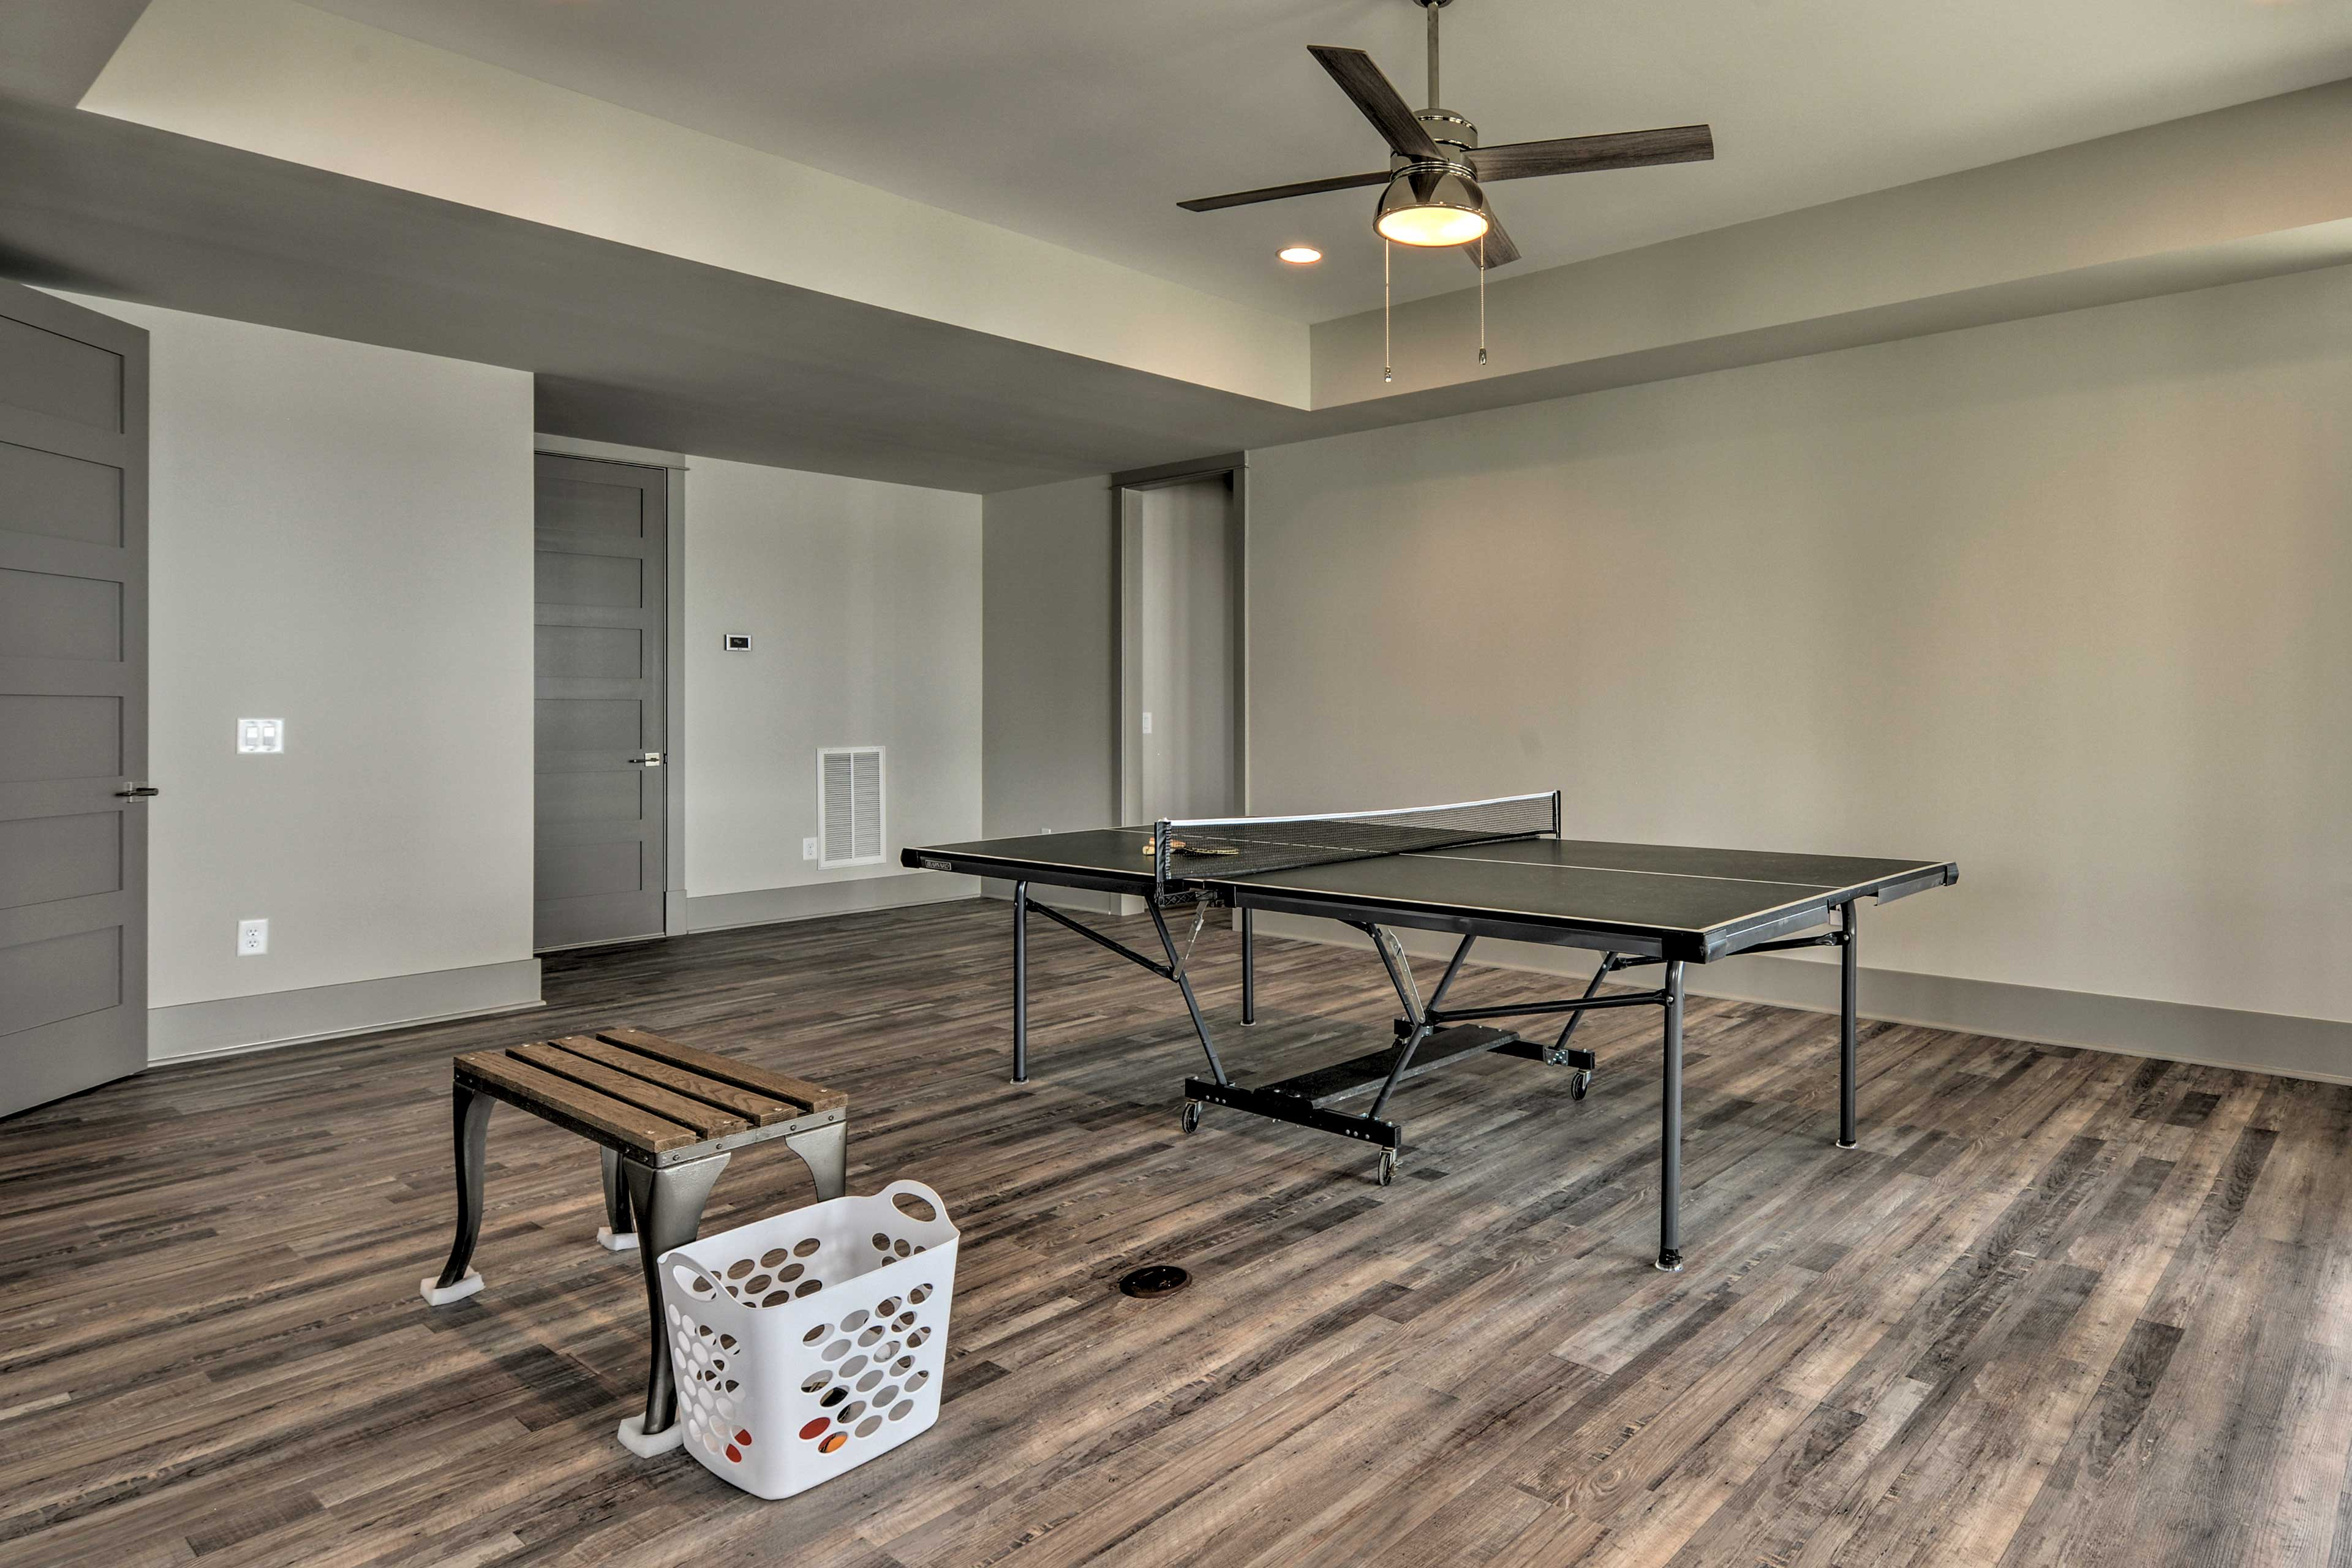 Kick-off your trip with a game of table tennis!